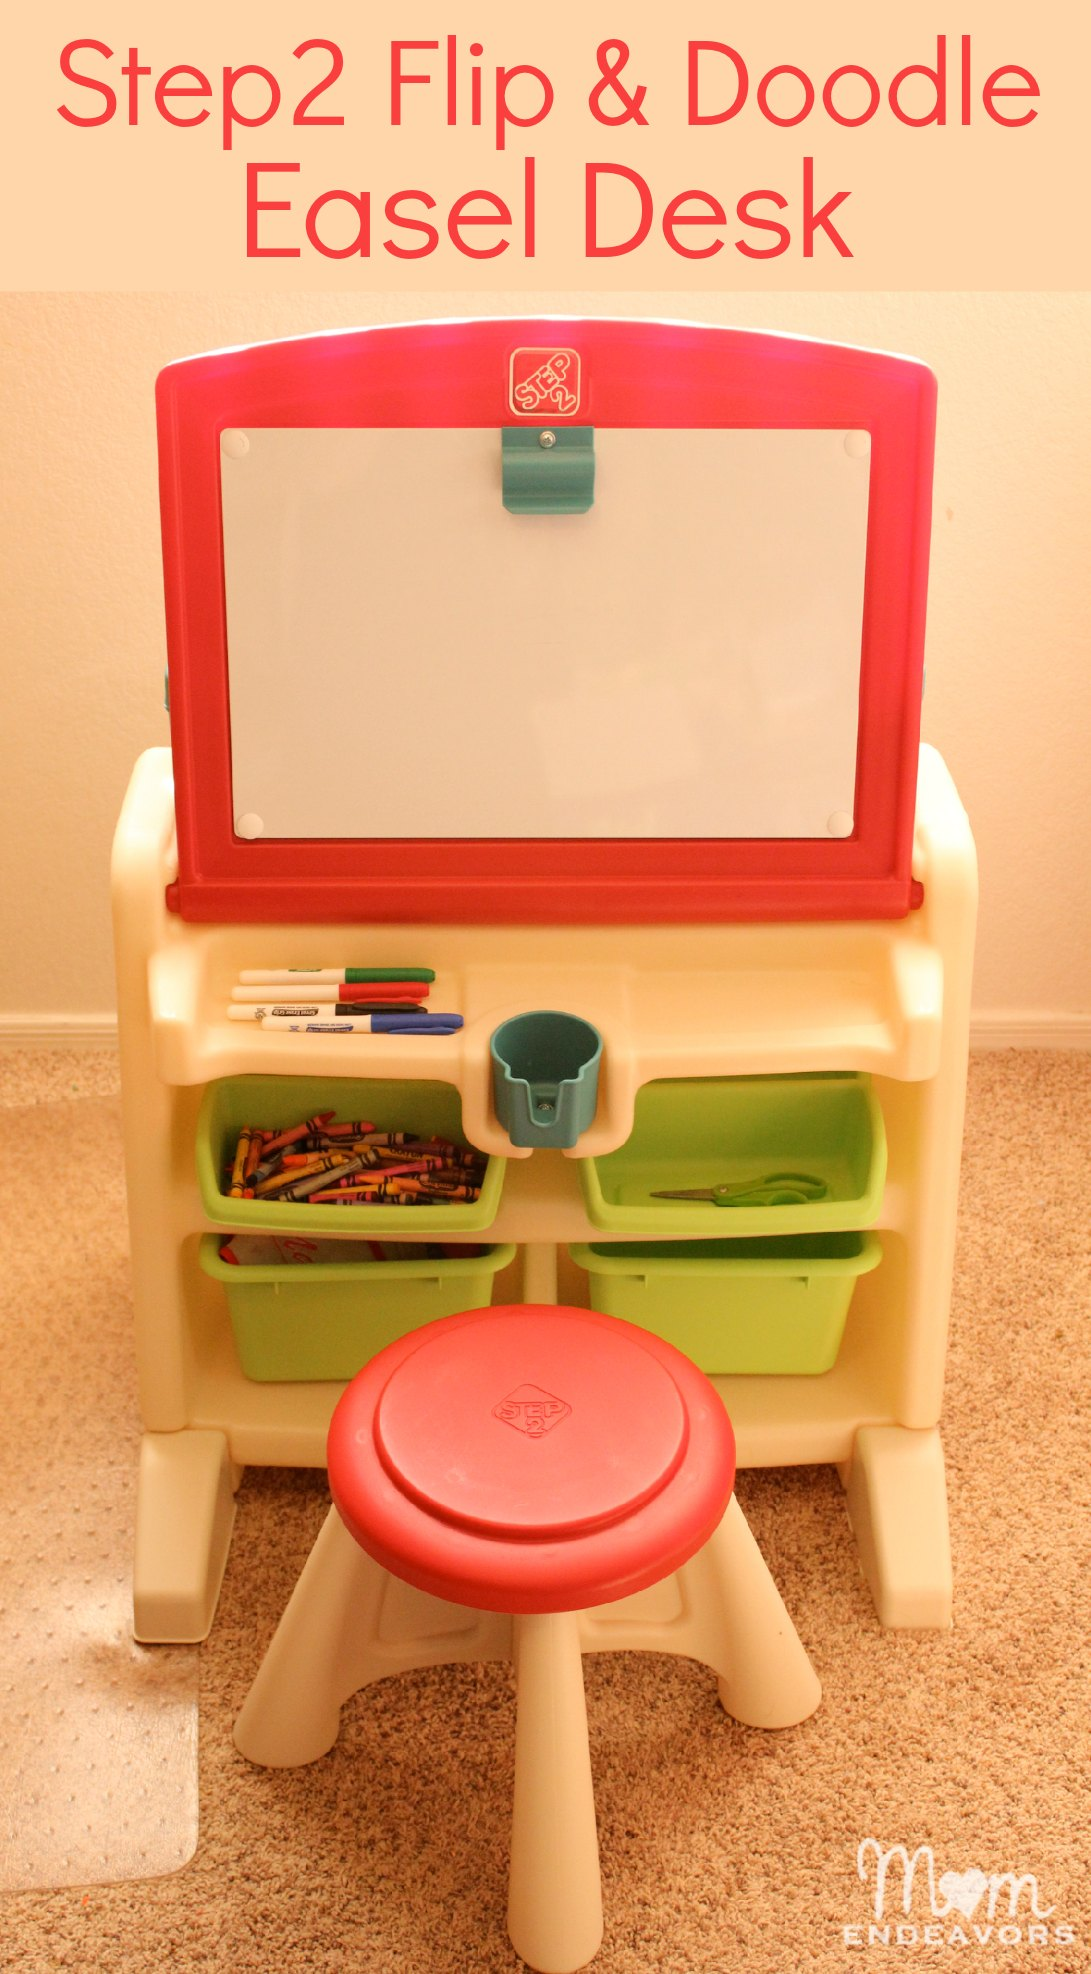 This little art desk & easel is one of our favorite things!